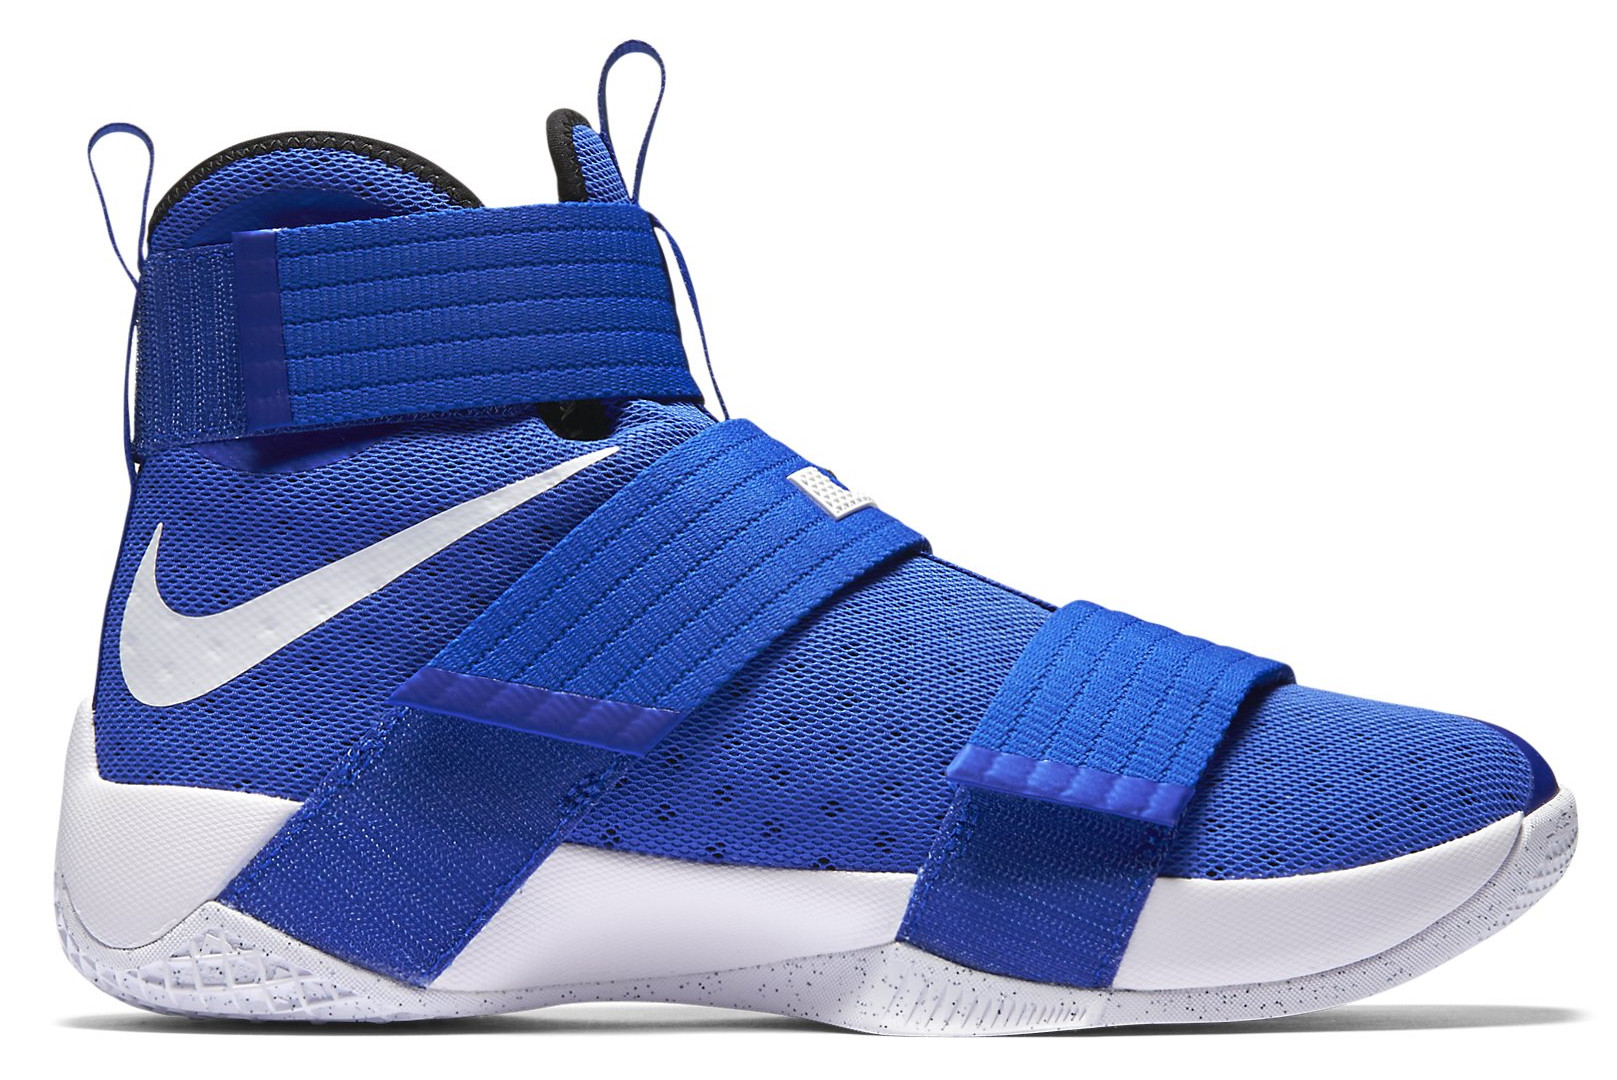 super popular ced2a 4600c ... nike lebron soldier 10 tb university blue namelebron soldier 10.  colorgame royal ...